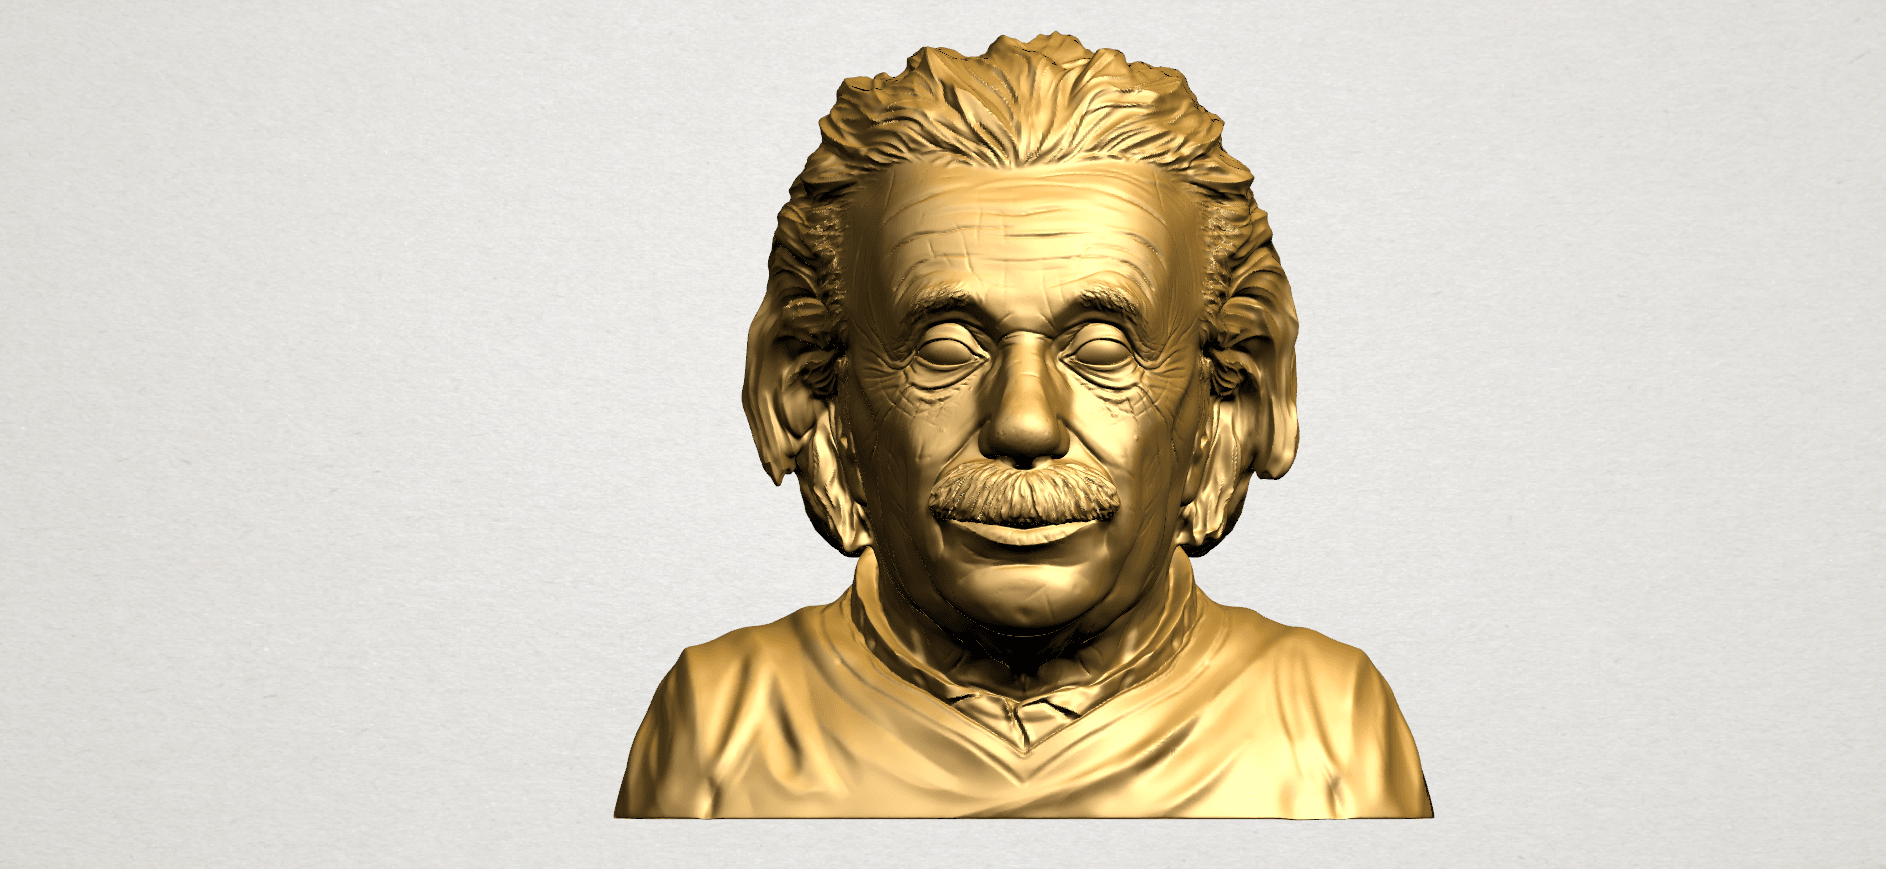 Einstein B01.png Download free STL file Einstein • 3D printer template, GeorgesNikkei